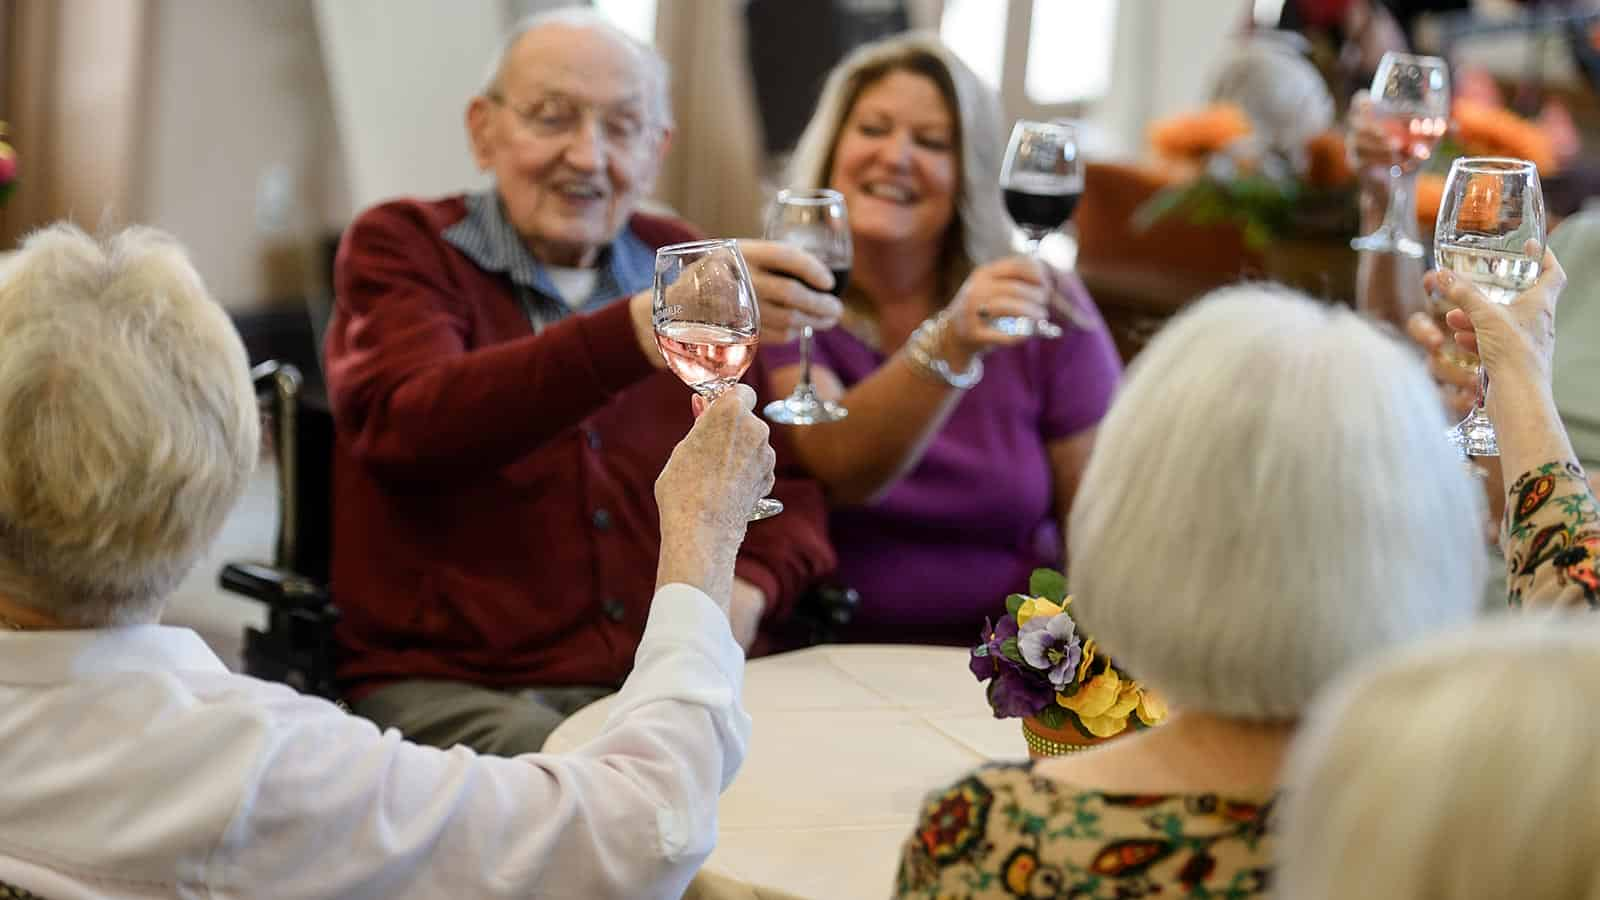 Senior group toasting wine